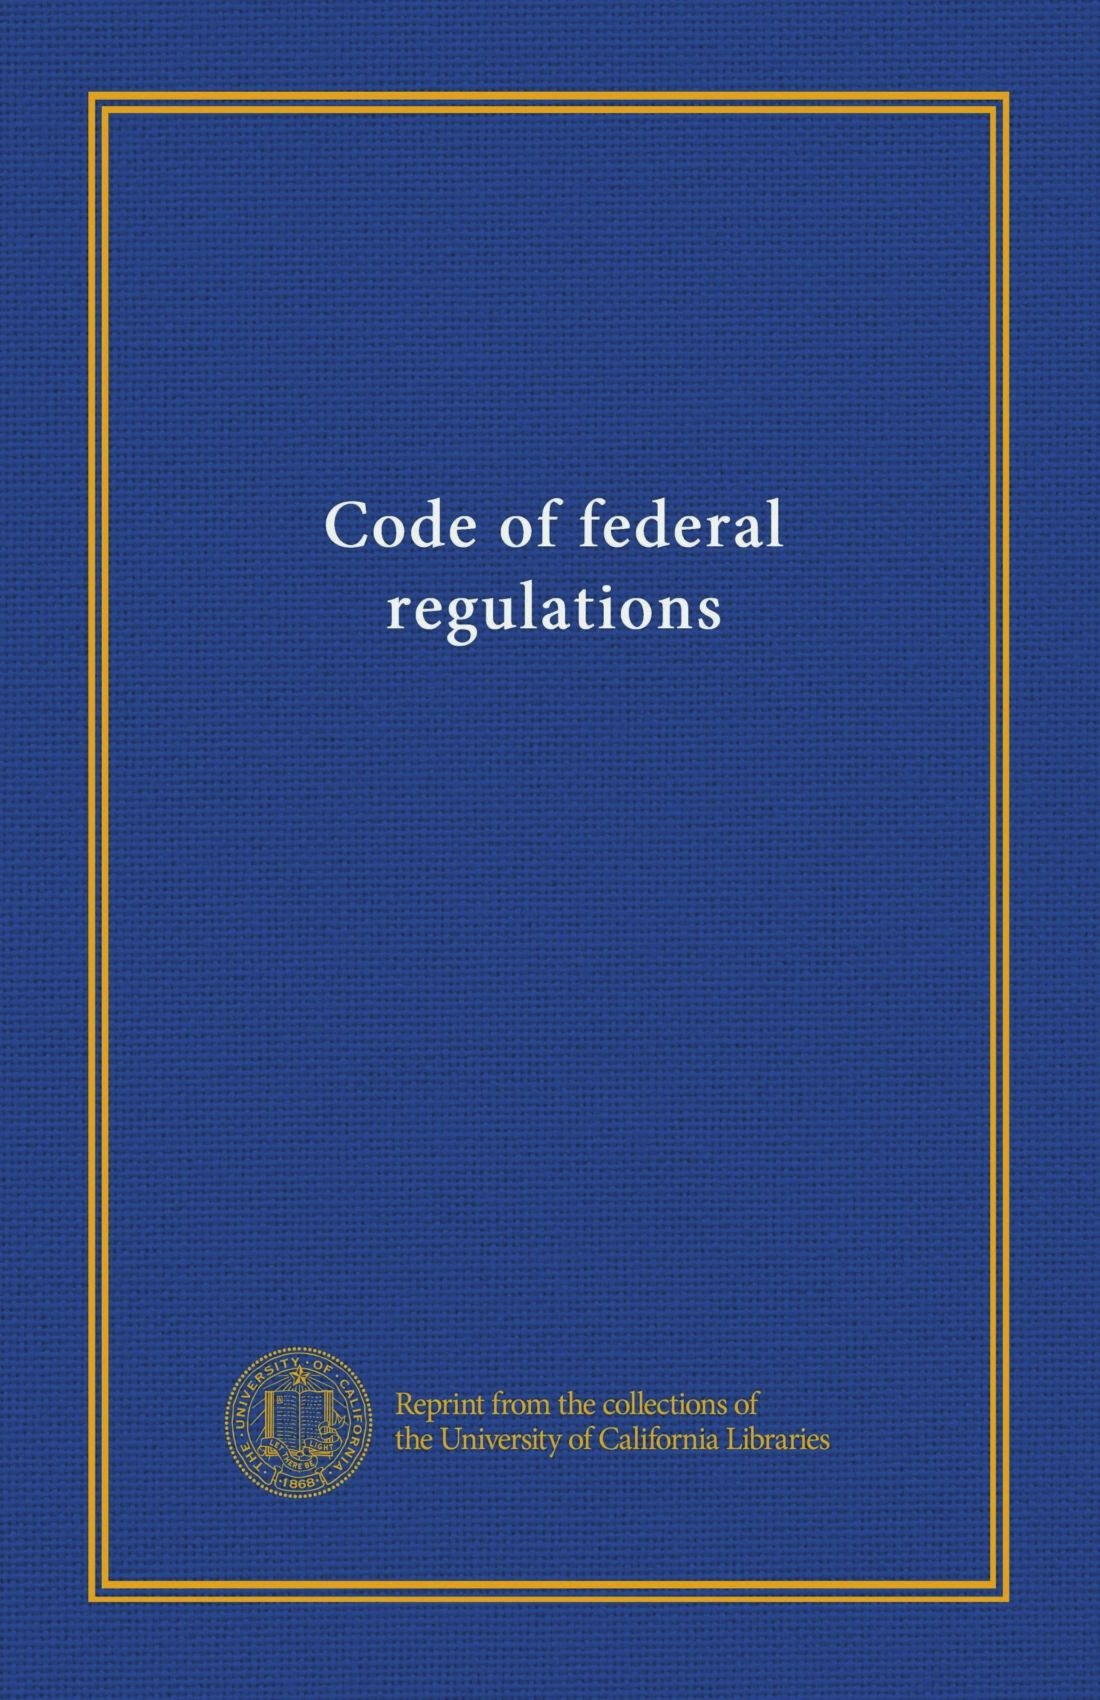 Code of federal regulations ((Title) 7:1500-end 1967) PDF